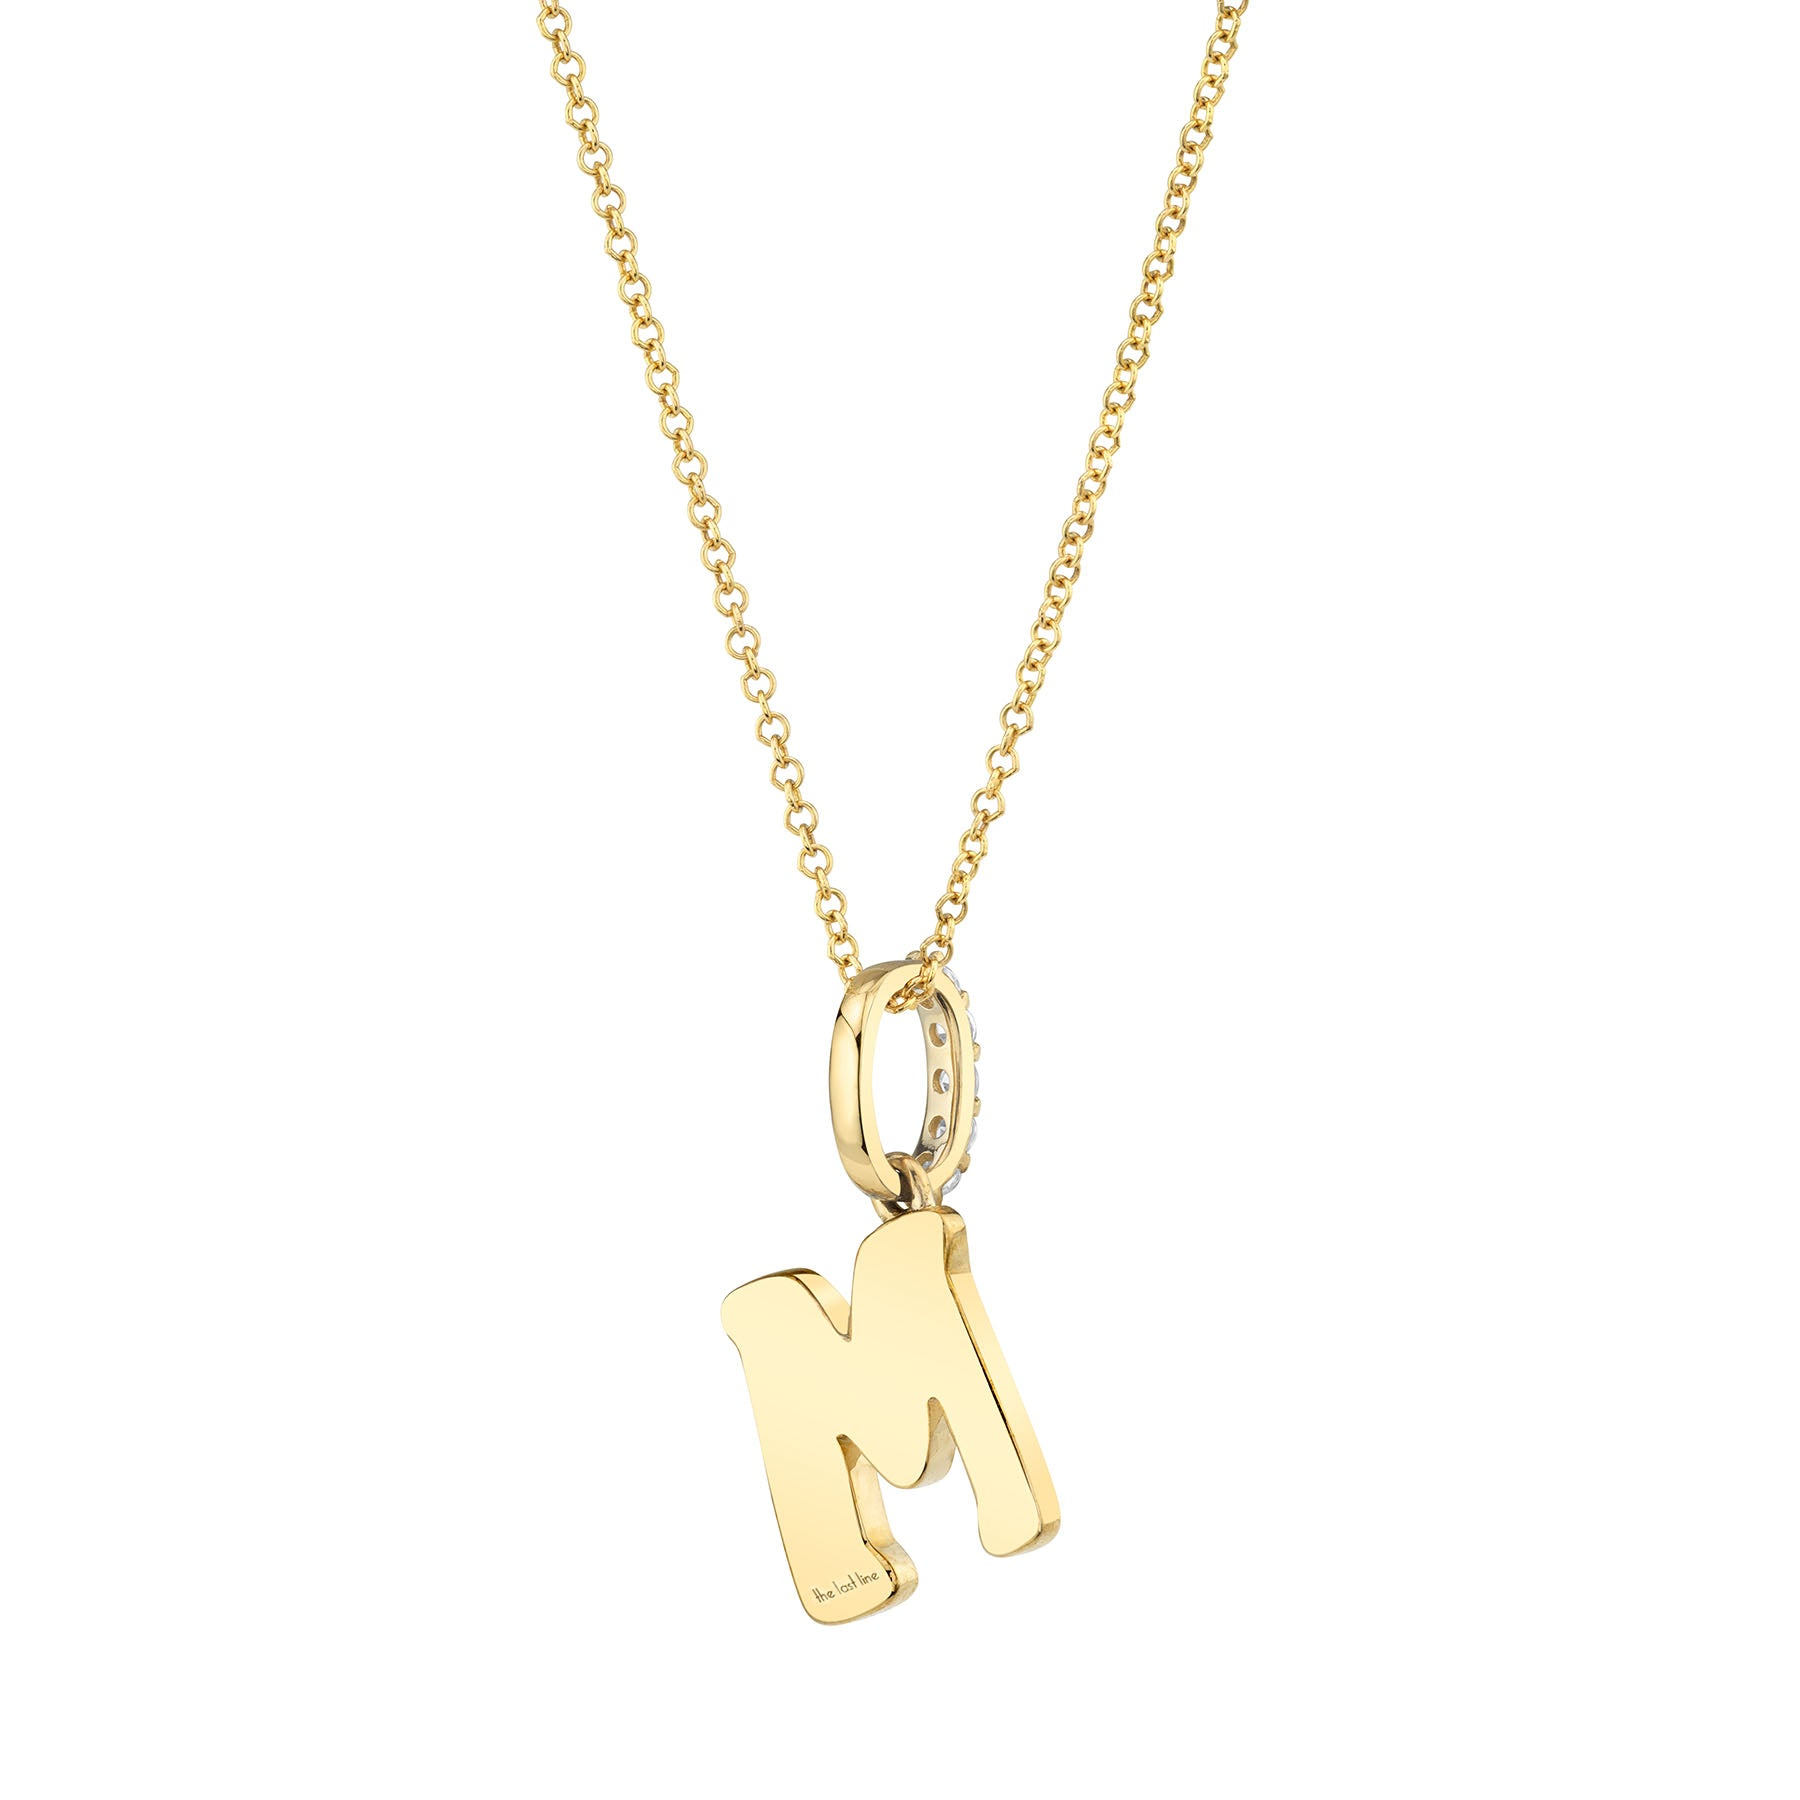 DIAMOND AND BLACK ENAMEL LETTER PENDANT